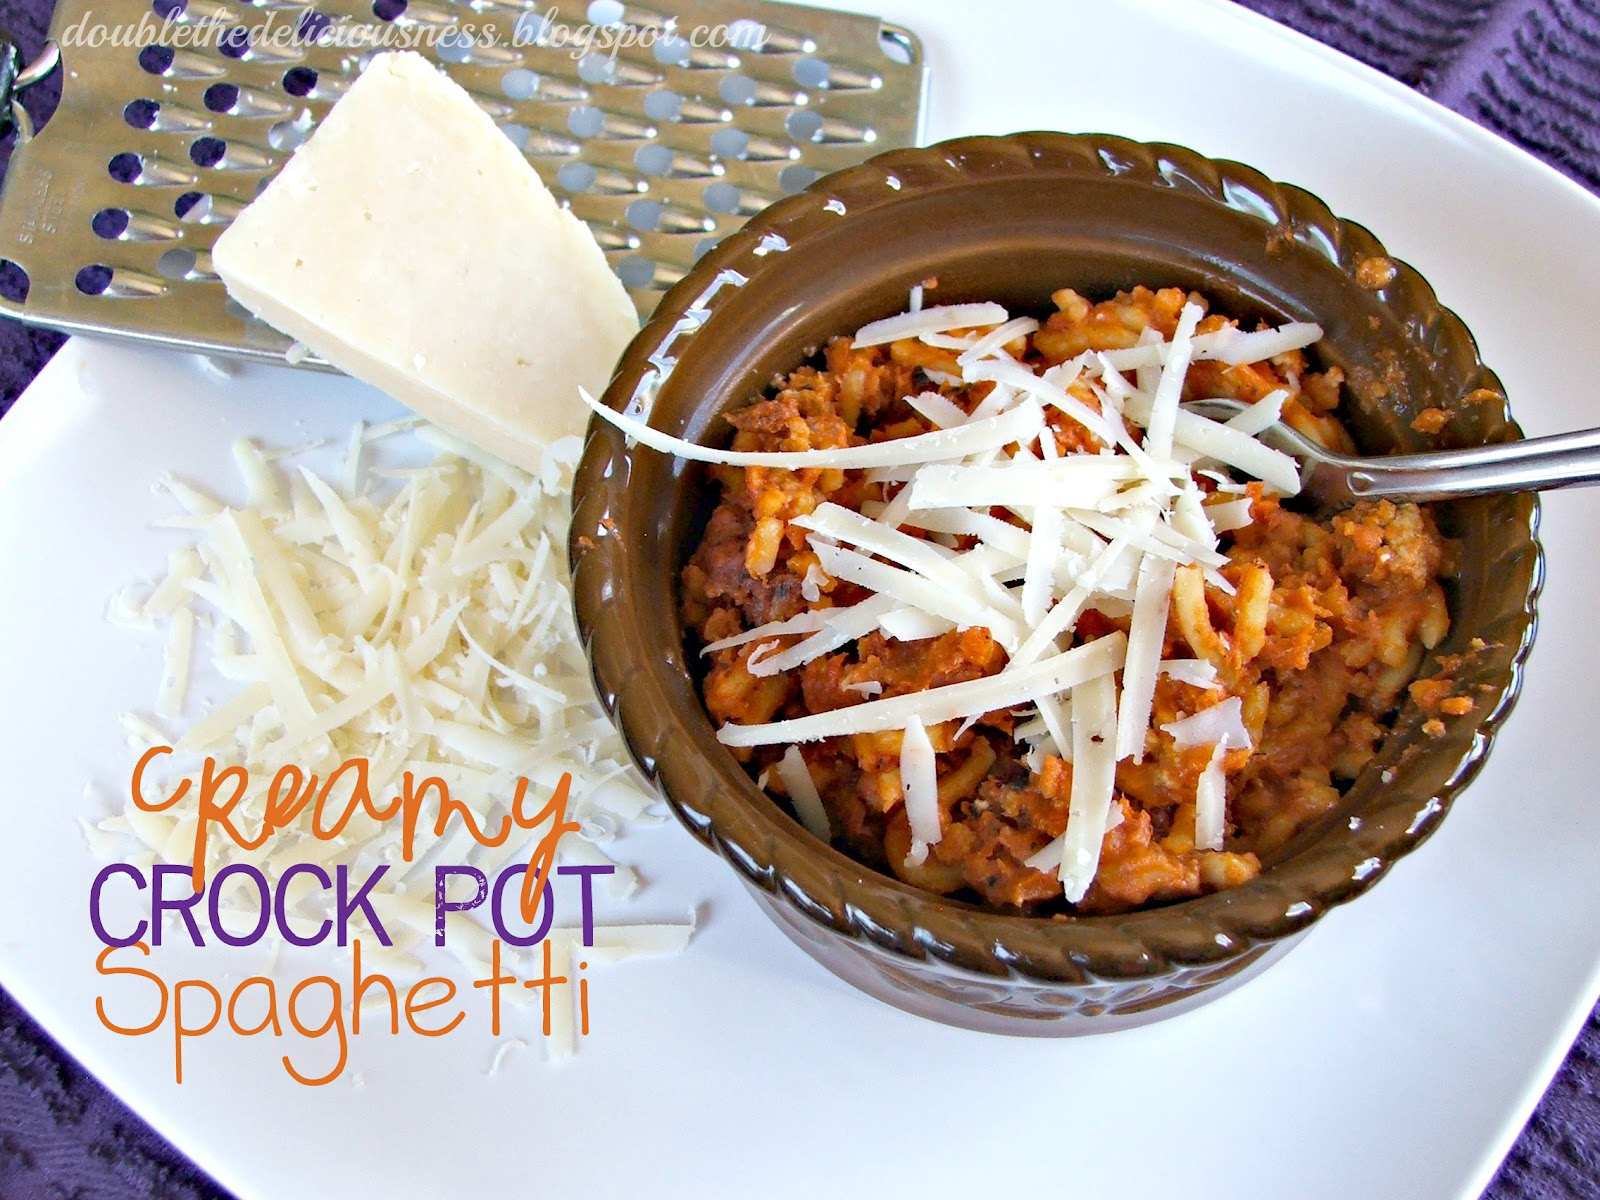 Double the Deliciousness: Creamy Crock Pot Spaghetti